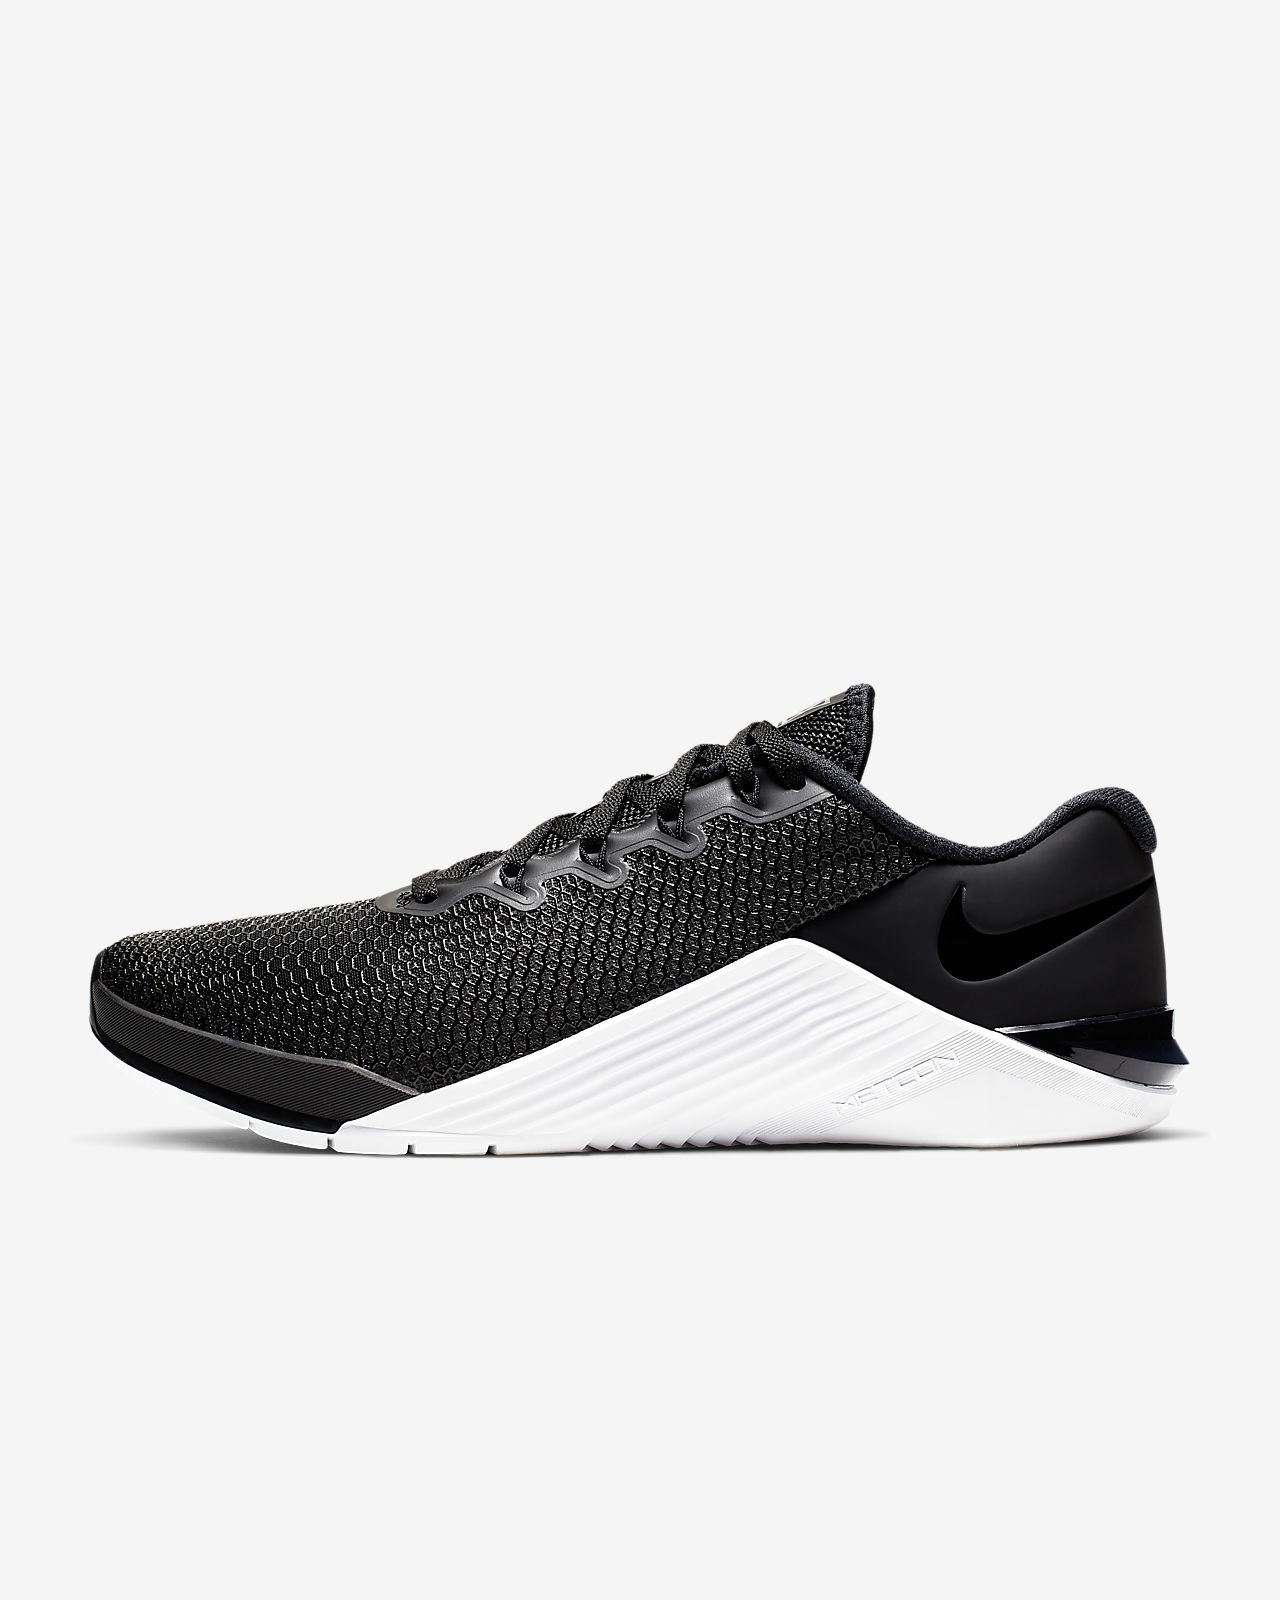 better coupon codes great prices Chaussure de training Nike Metcon 5 pour Femme